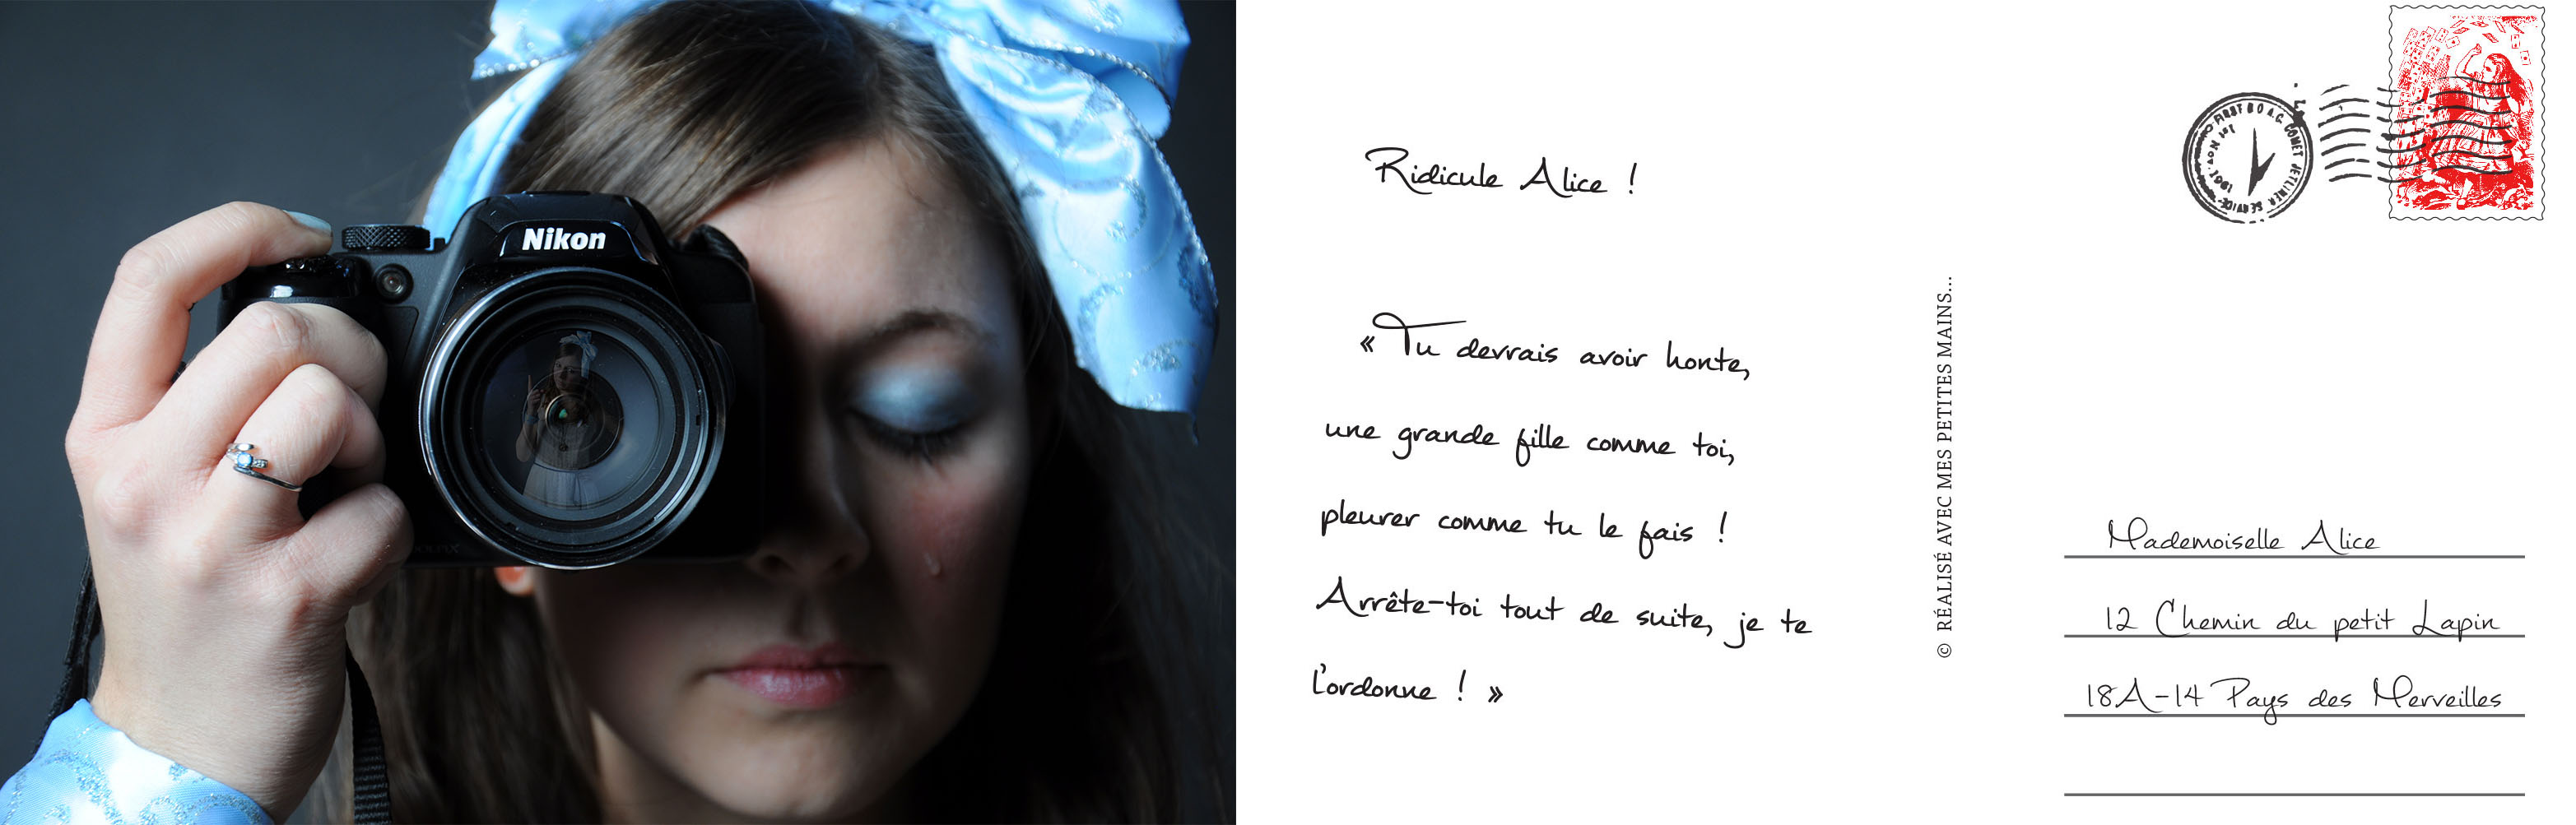 3 - Ridicule Alice